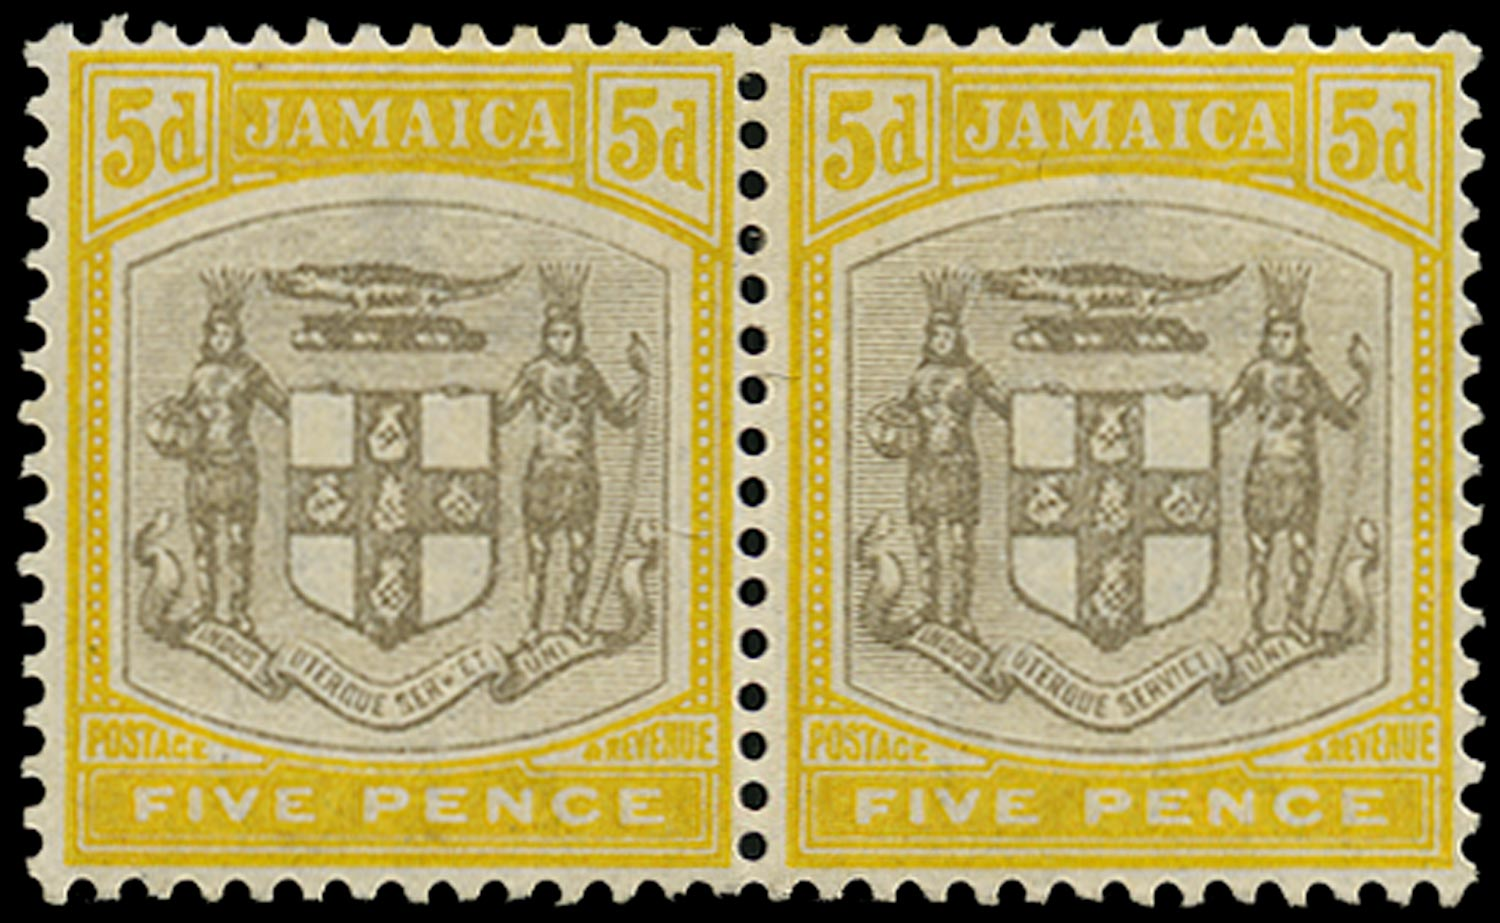 JAMAICA 1903  SG36a Mint 5d grey and yellow Arms variety 'SER.ET' for 'SERVIET'